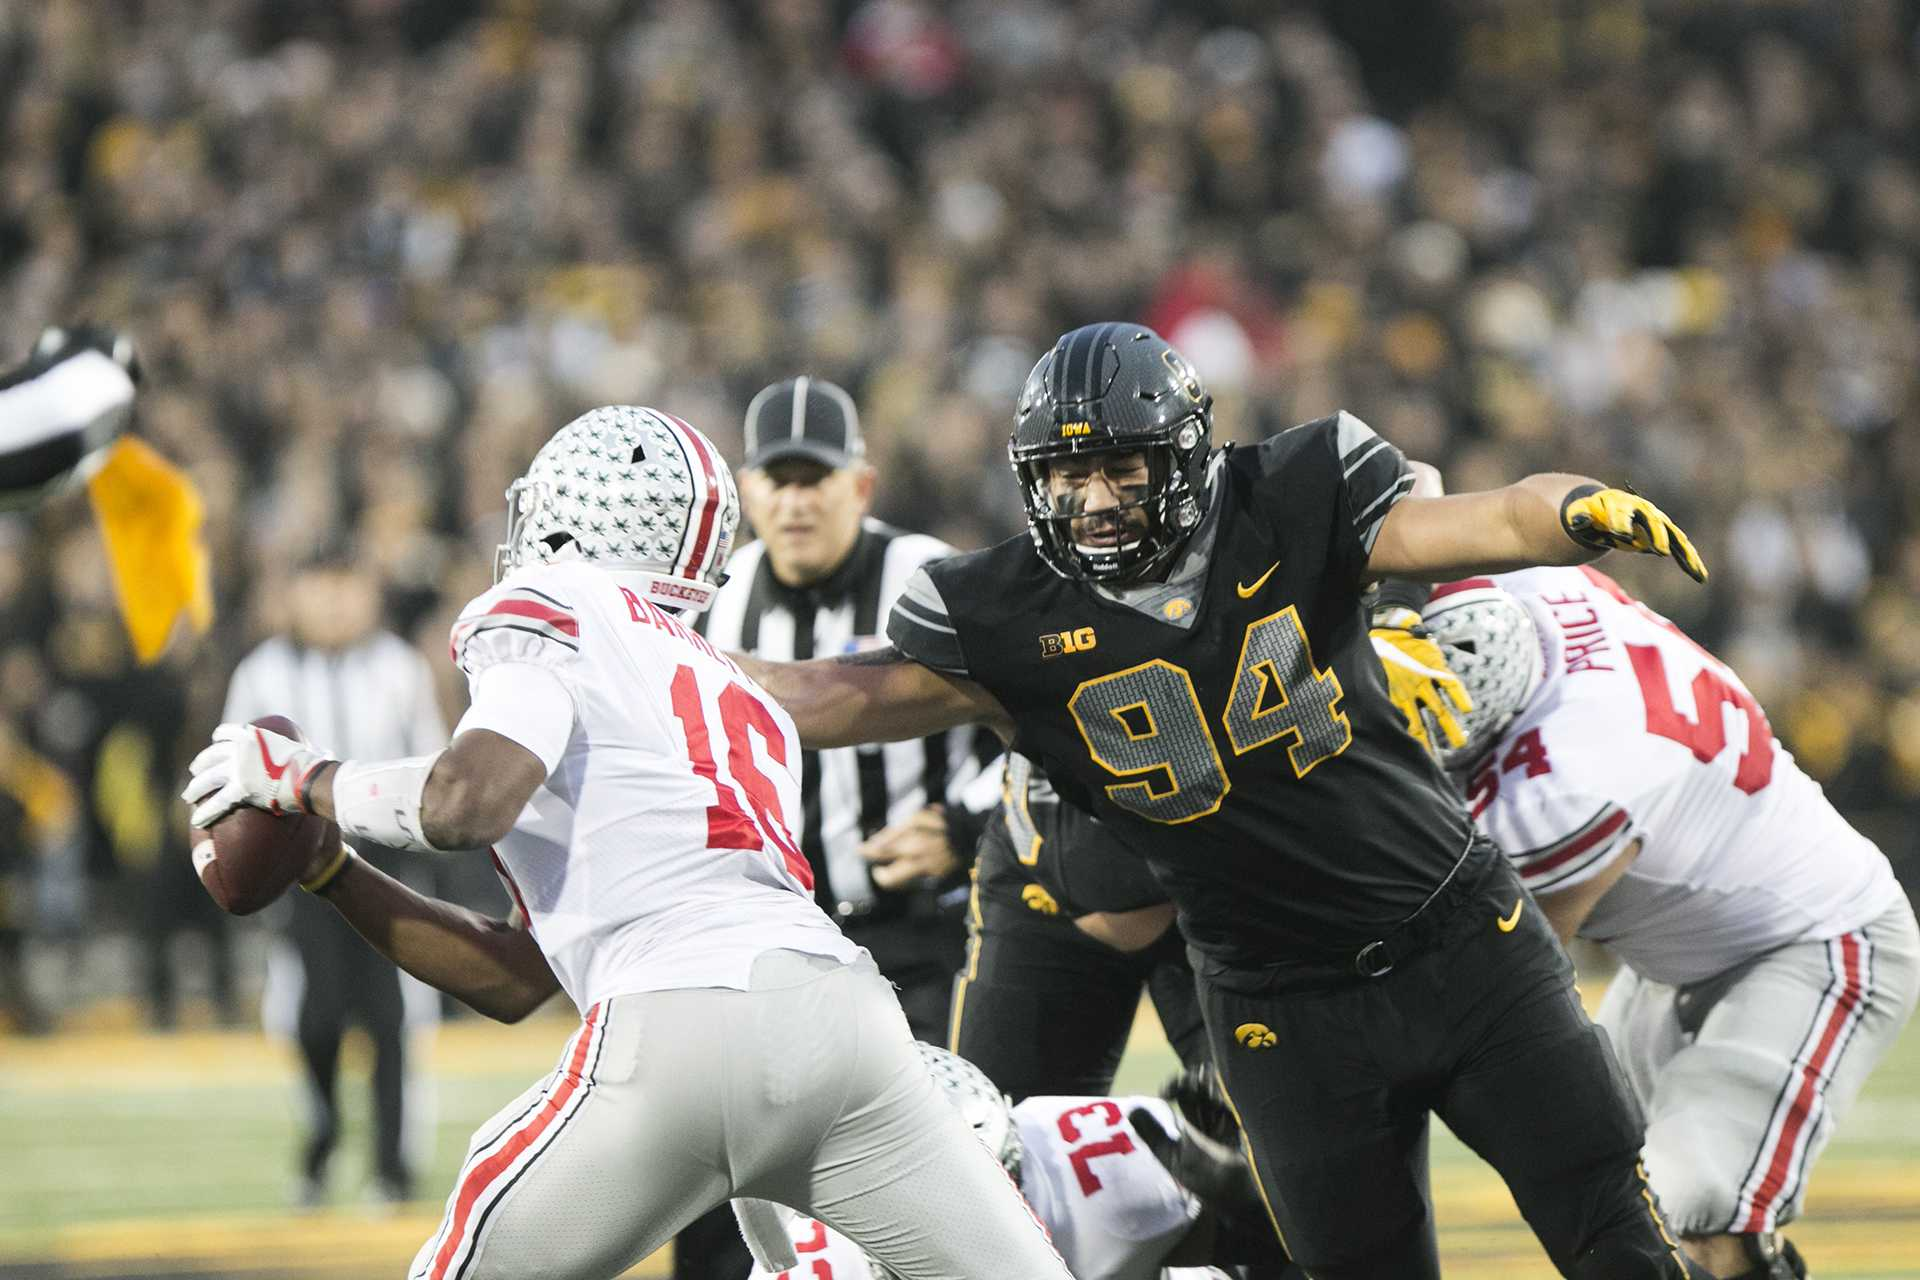 Iowa defensive end A.J. Epenesa goes for a sack against Ohio State quarterback J.T. Barrett during the Iowa/Ohio State football game in Kinnick Stadium on Saturday, Nov. 4, 2017. The Hawkeyes defeated the Buckeyes in a storming fashion, 55-24. (Joseph Cress/The Daily Iowan)